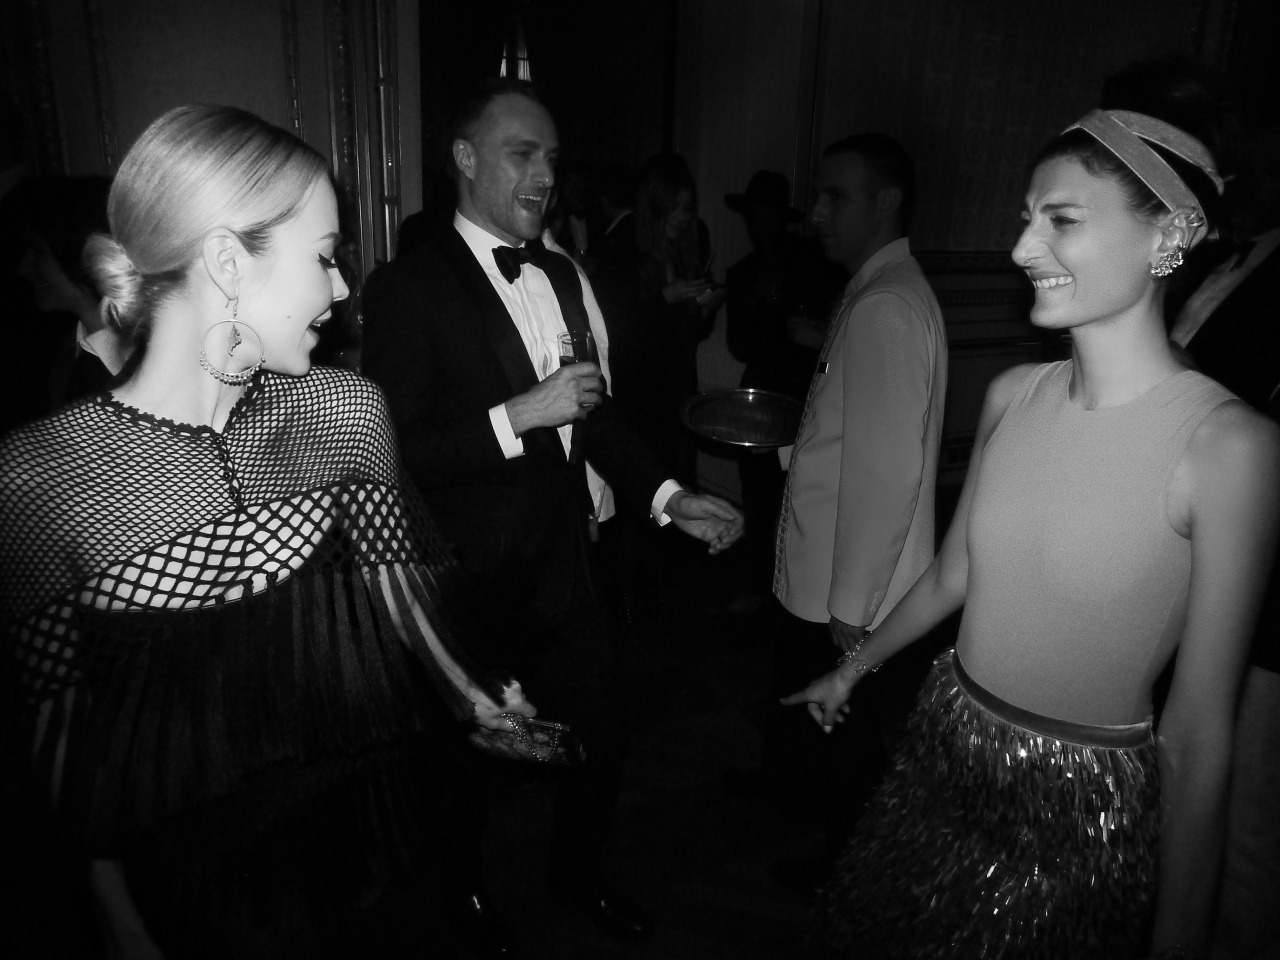 Fashion divas dancing at Carine Roitfeld's party in Paris: Mrs. Ulyana Sergeenko & Mrs. Giovanna Battaglia